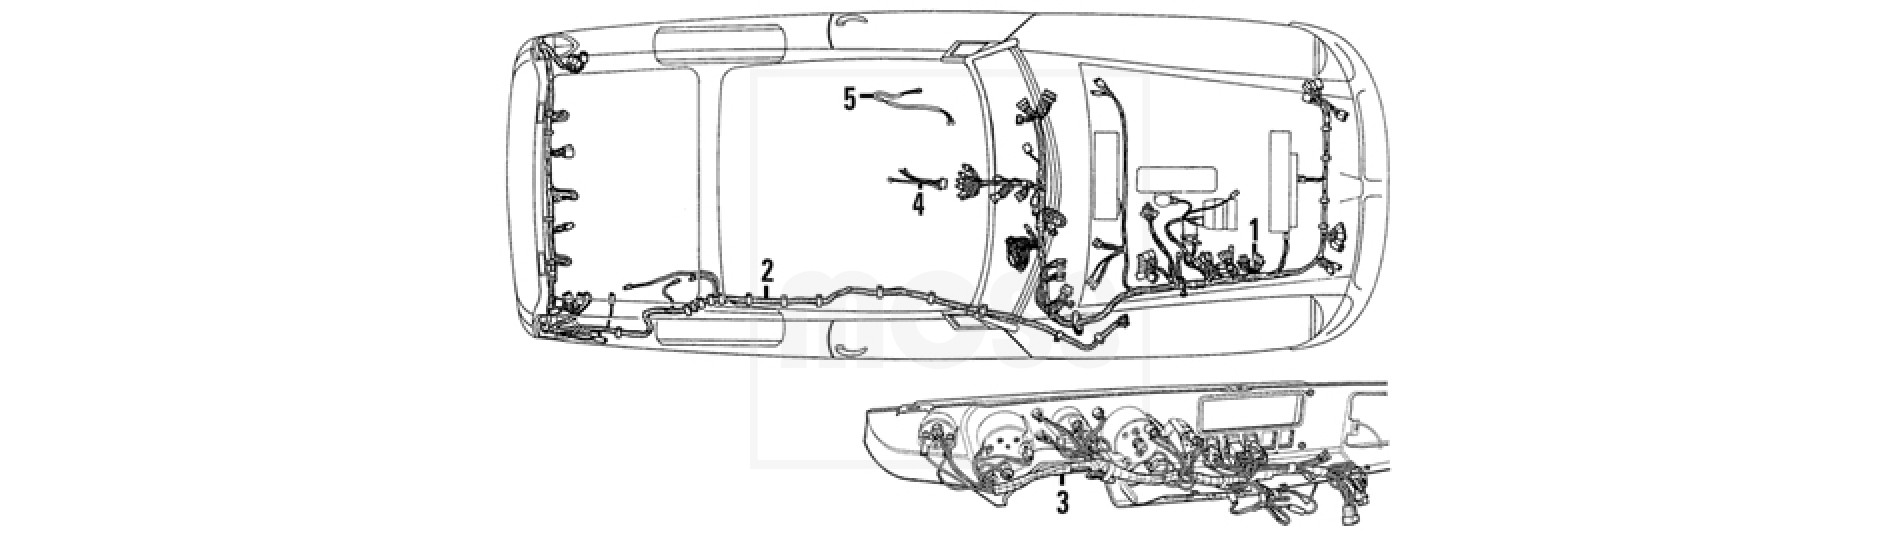 hight resolution of mgb wiring harness wiring diagram forward mgb wiring harness diagram